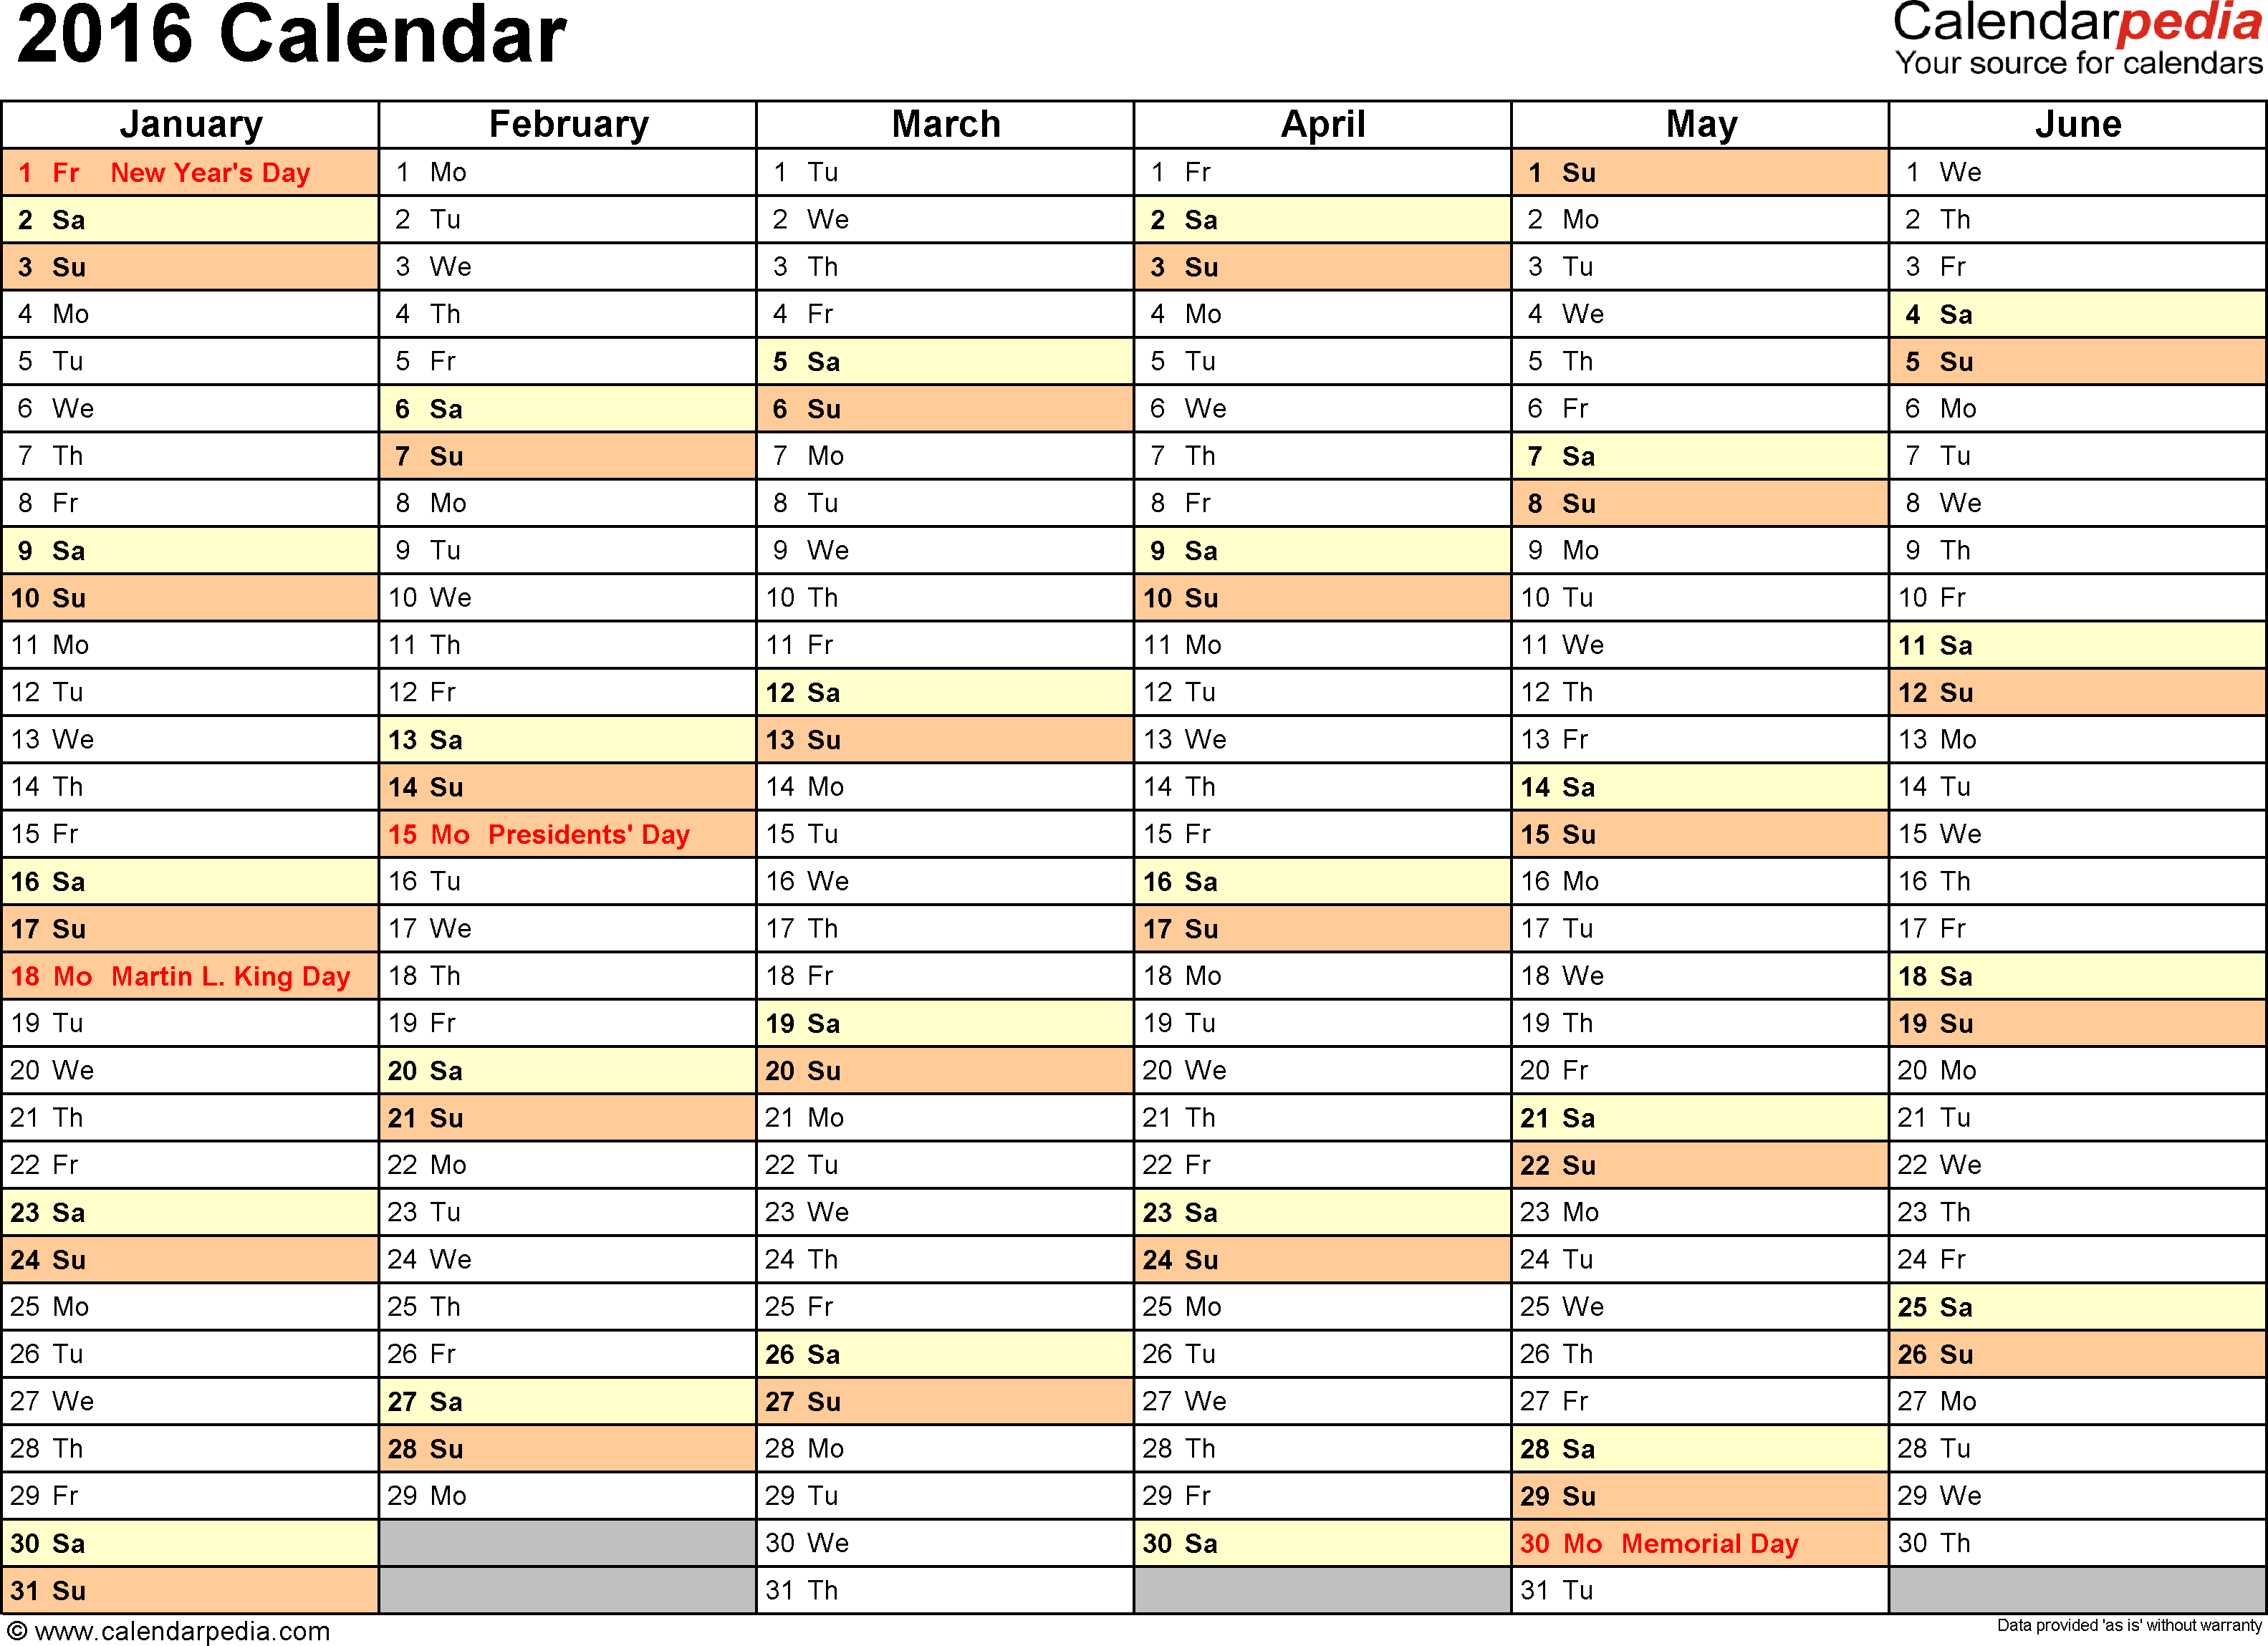 Ediblewildsus  Surprising  Calendar  Download  Free Printable Excel Templates Xls With Remarkable Template   Calendar For Excel Months Horizontally  Pages Landscape Orientation With Awesome Subtract Hours In Excel Also Now In Excel In Addition Excel Growth Function And Novotel London Excel Booking As Well As How To Remove Cells In Excel Additionally Excel  Free Trial From Calendarpediacom With Ediblewildsus  Remarkable  Calendar  Download  Free Printable Excel Templates Xls With Awesome Template   Calendar For Excel Months Horizontally  Pages Landscape Orientation And Surprising Subtract Hours In Excel Also Now In Excel In Addition Excel Growth Function From Calendarpediacom